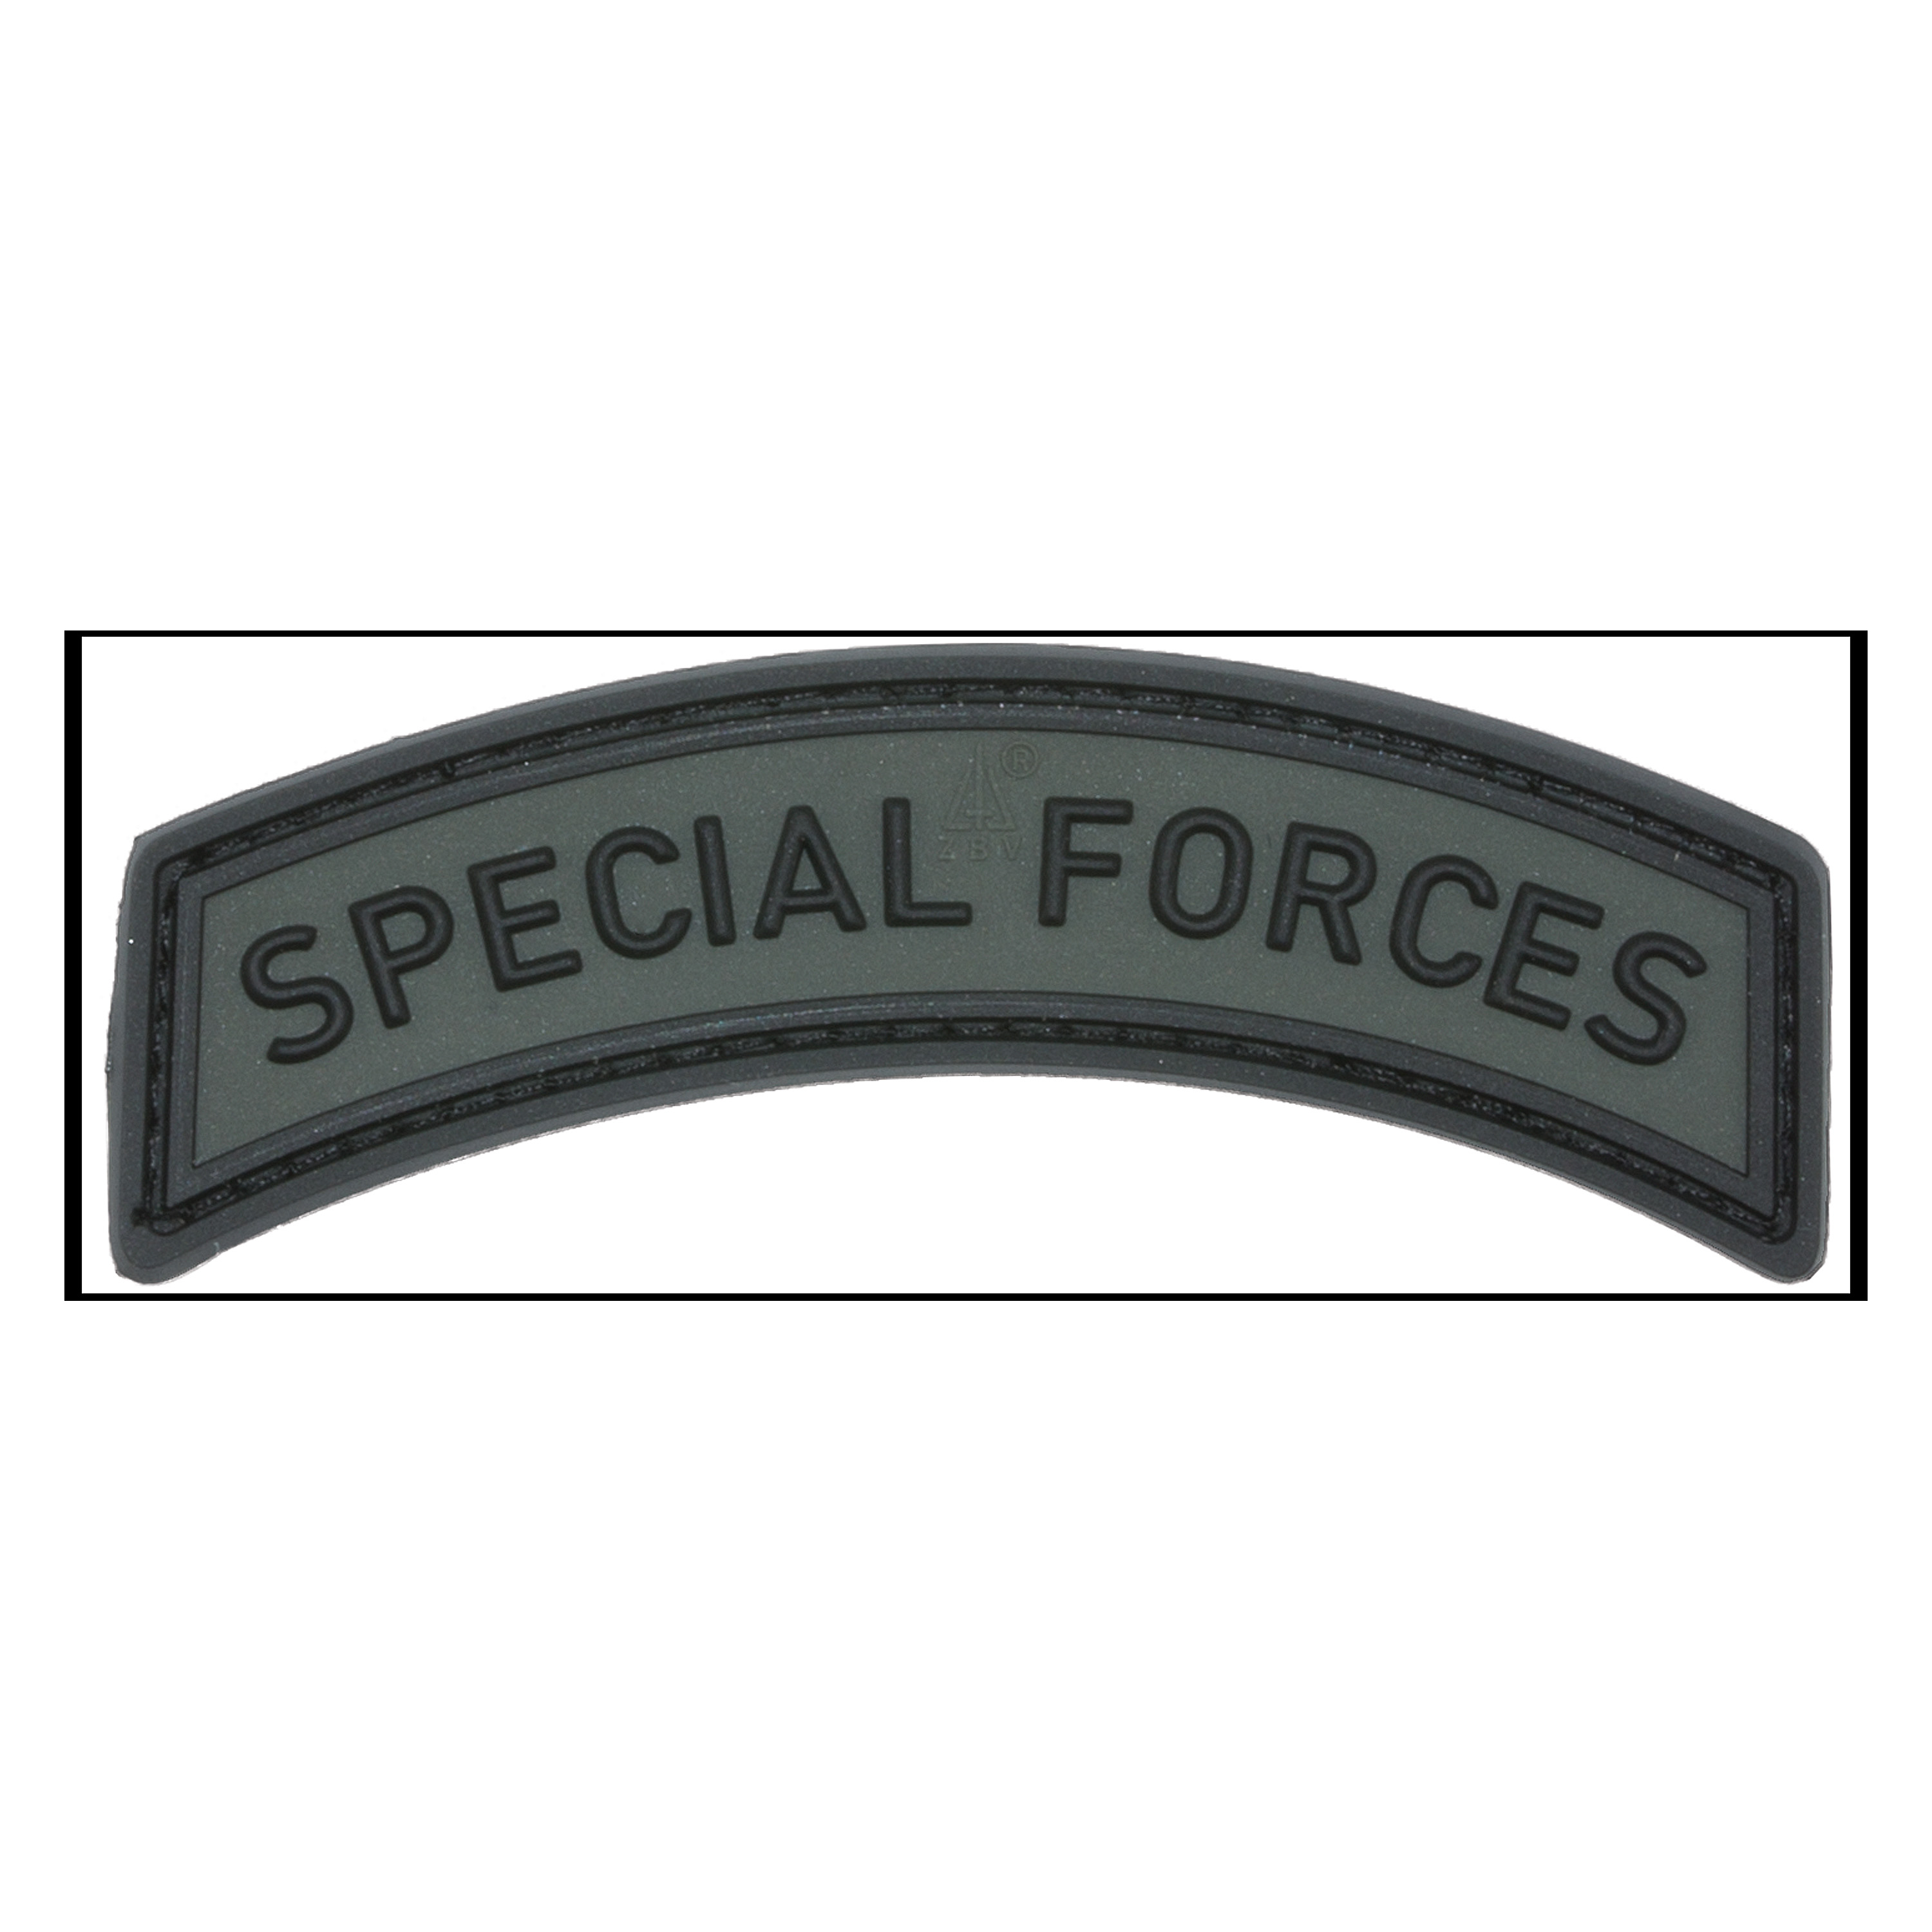 Jackets To Go 3D Patch Special Forces Tab battlegrey